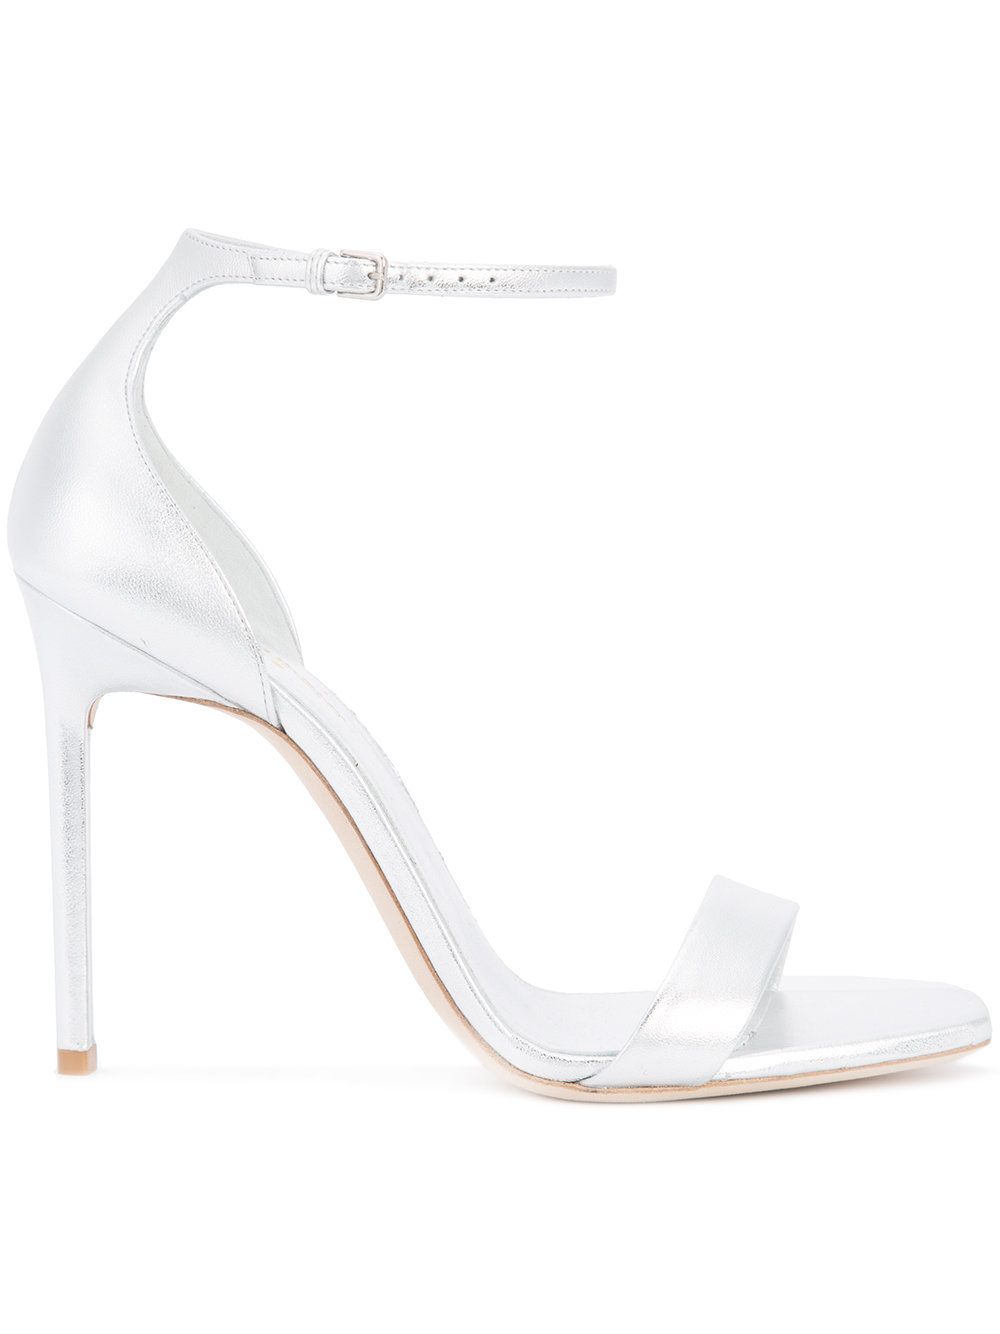 SAINT LAURENT sandals - $695